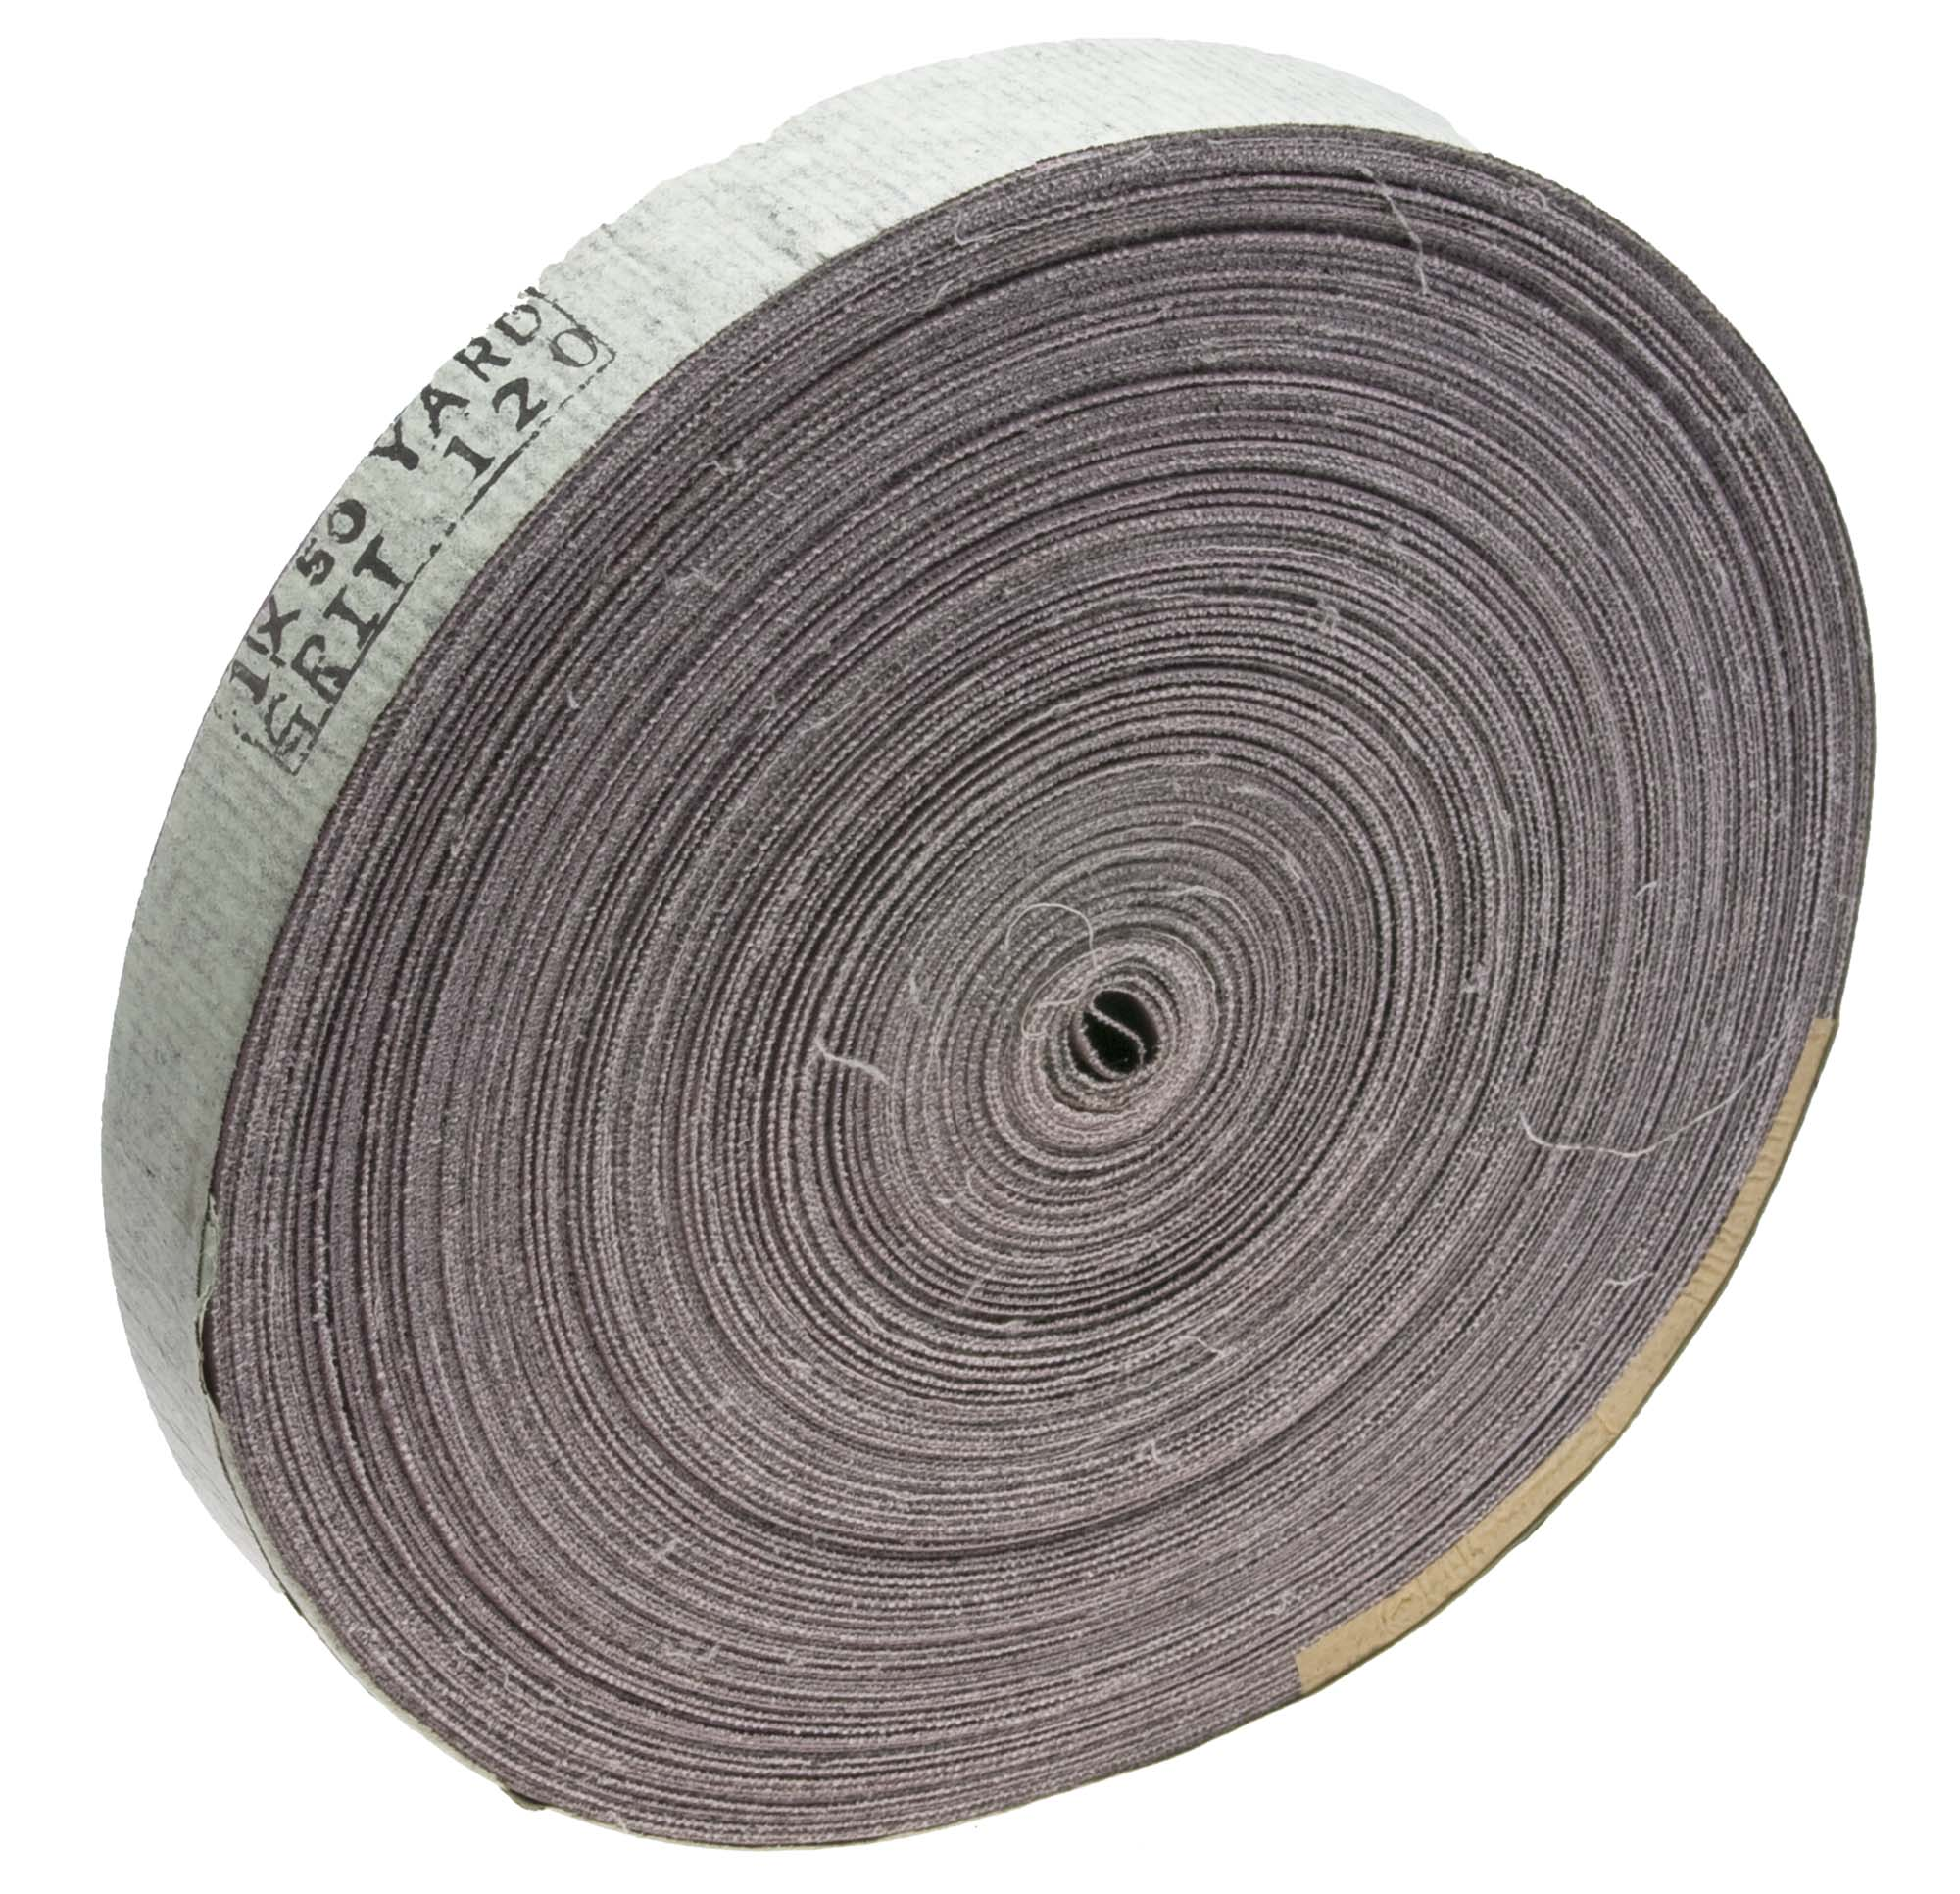 1 In x 40 Grit Import Aloxite Roll